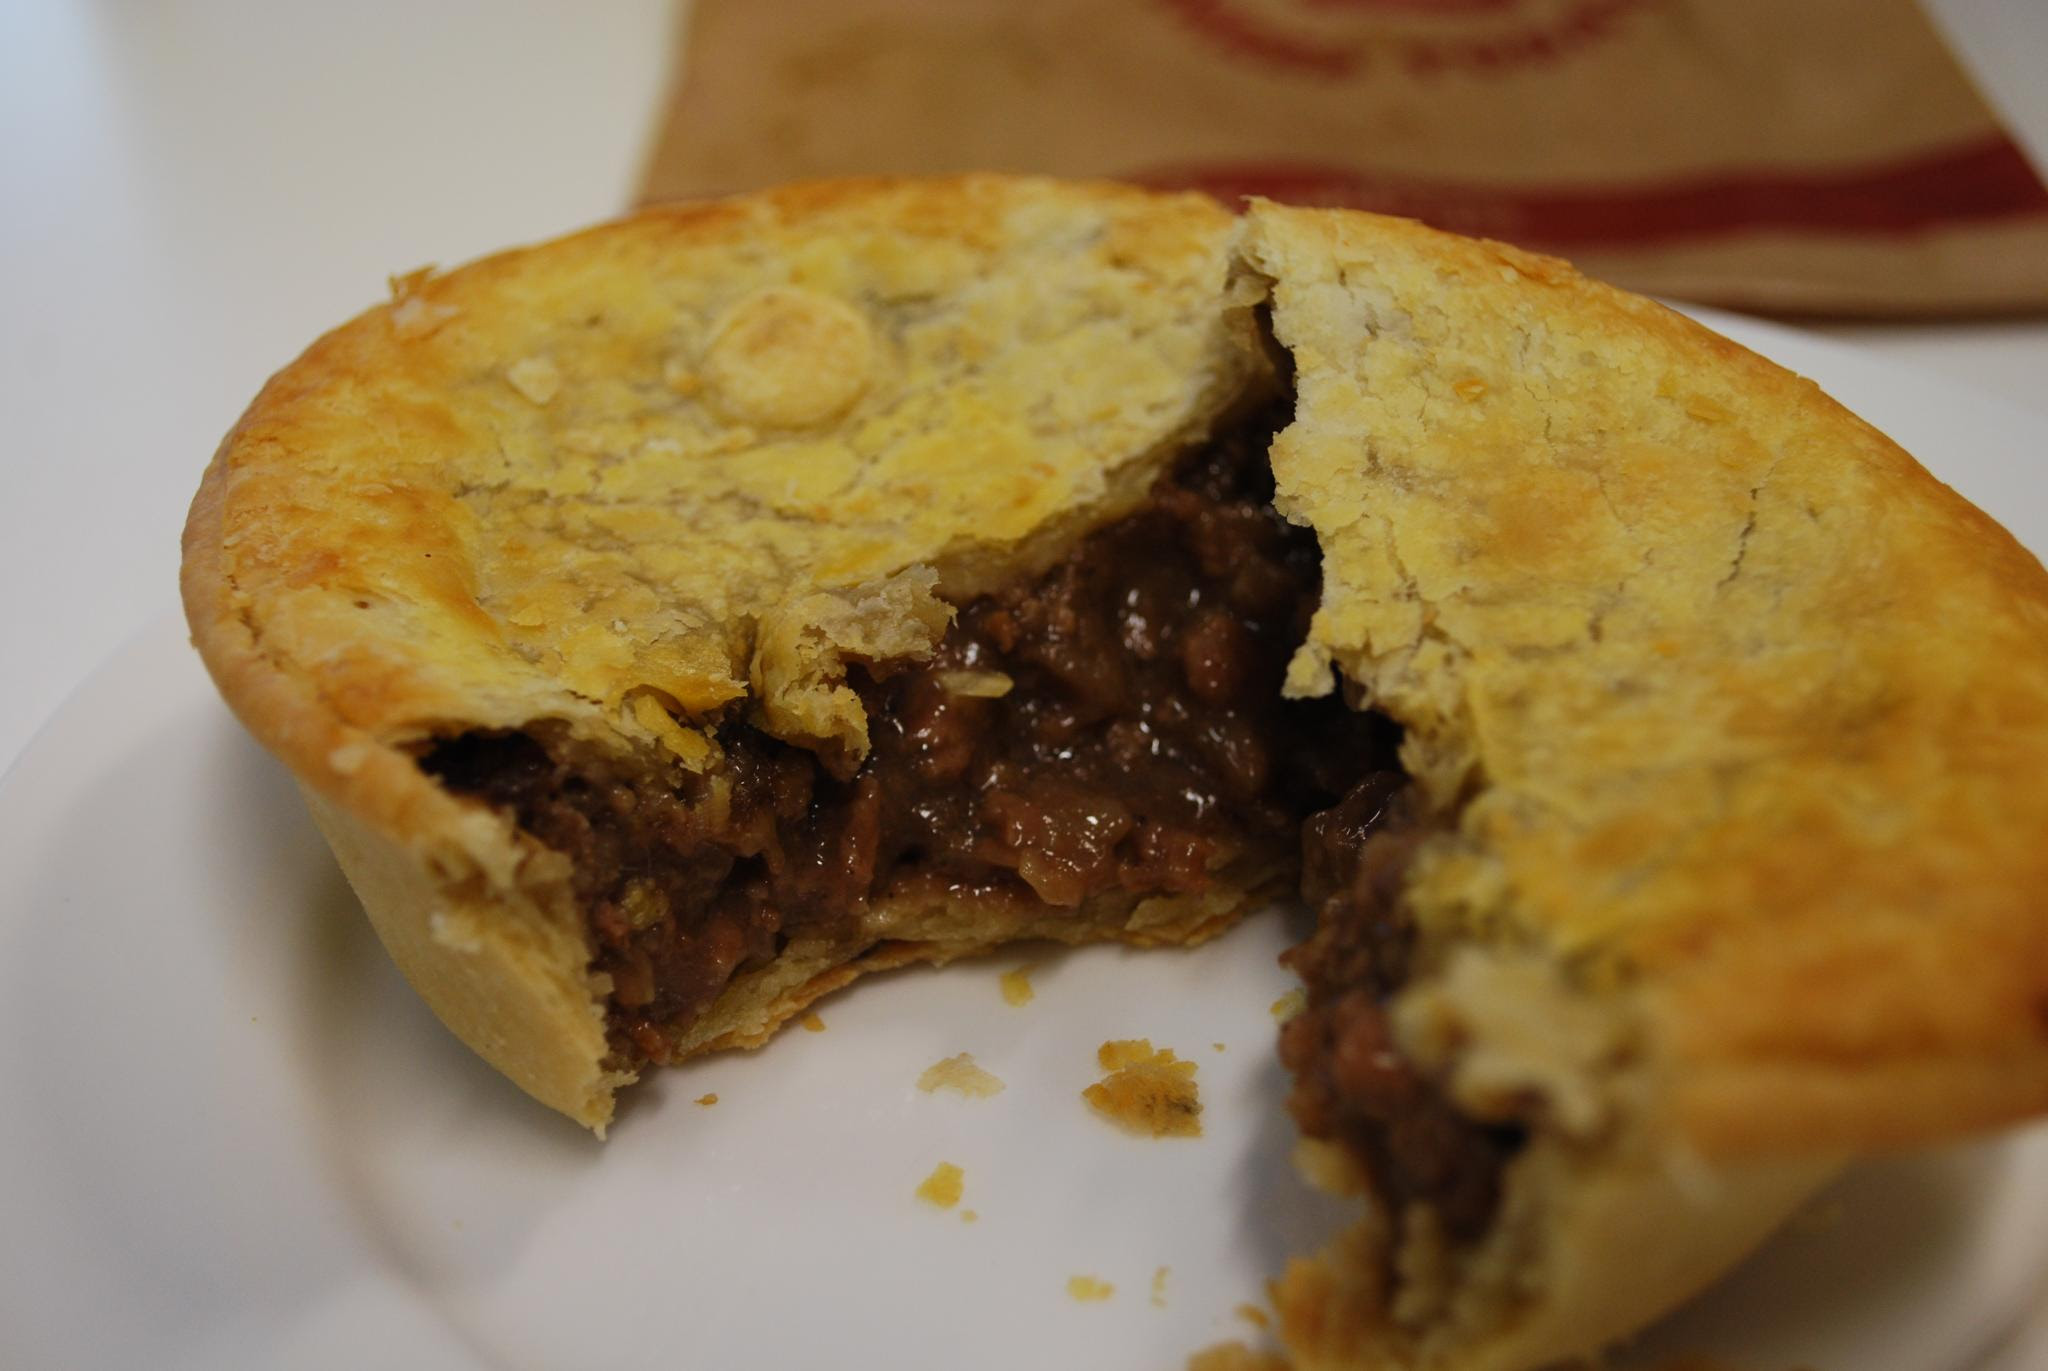 File:Steak and onion pie.jpg - Wikipedia